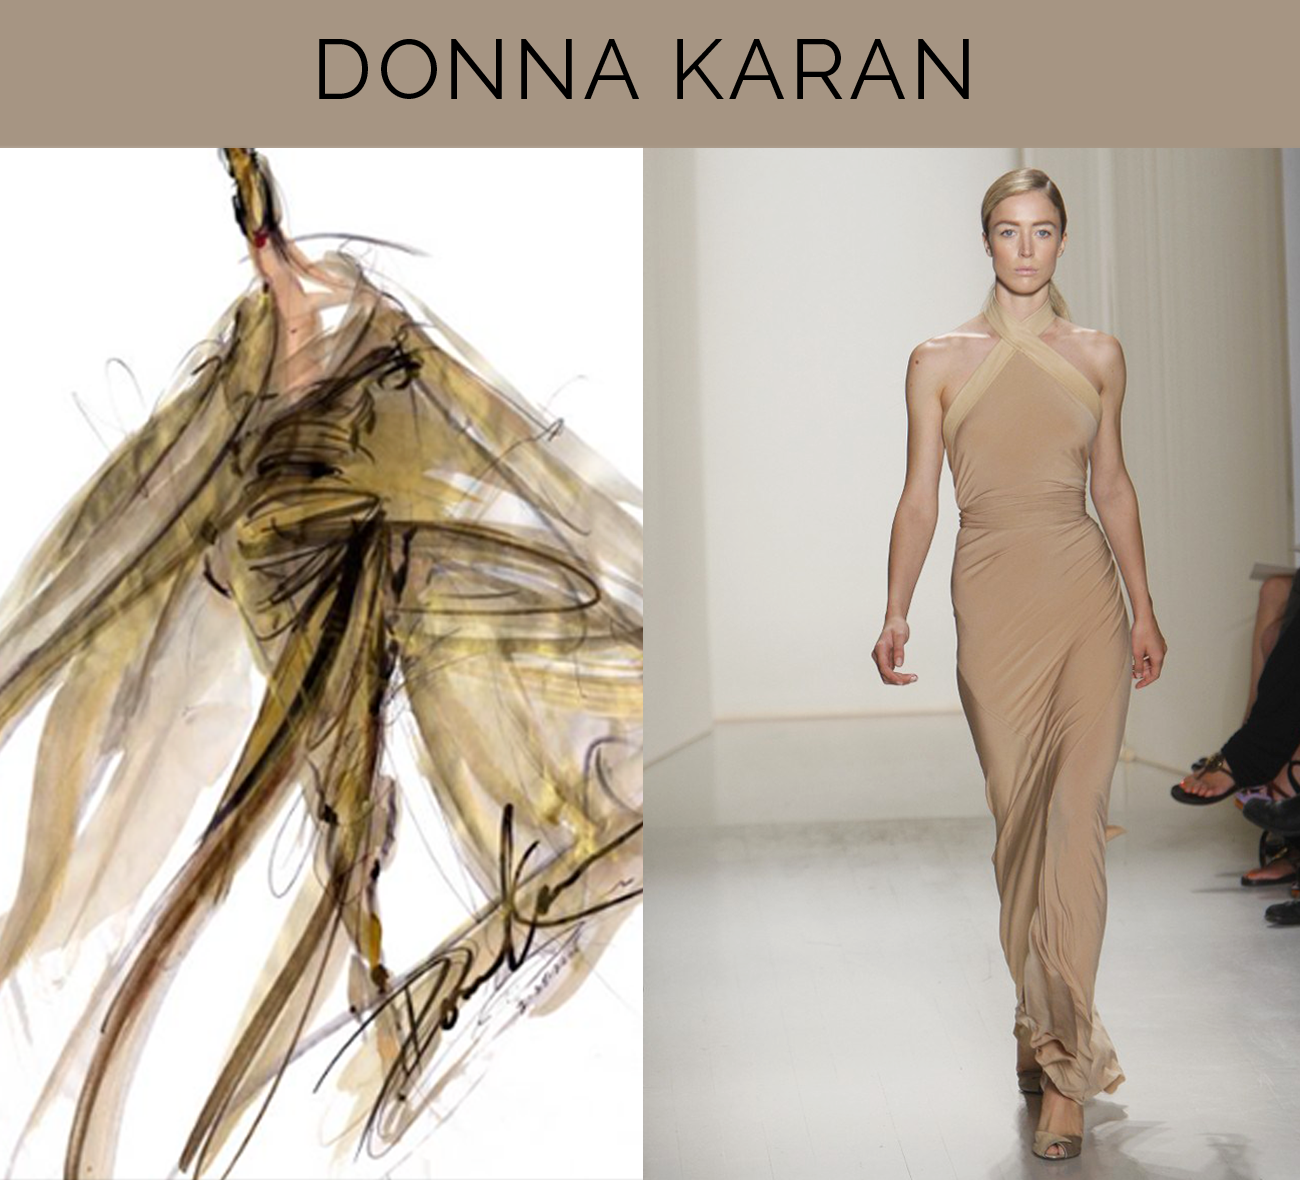 Fabulous Doodles Fashion Illustration Blog By Brooke Hagel Donna Karan End Of An Era